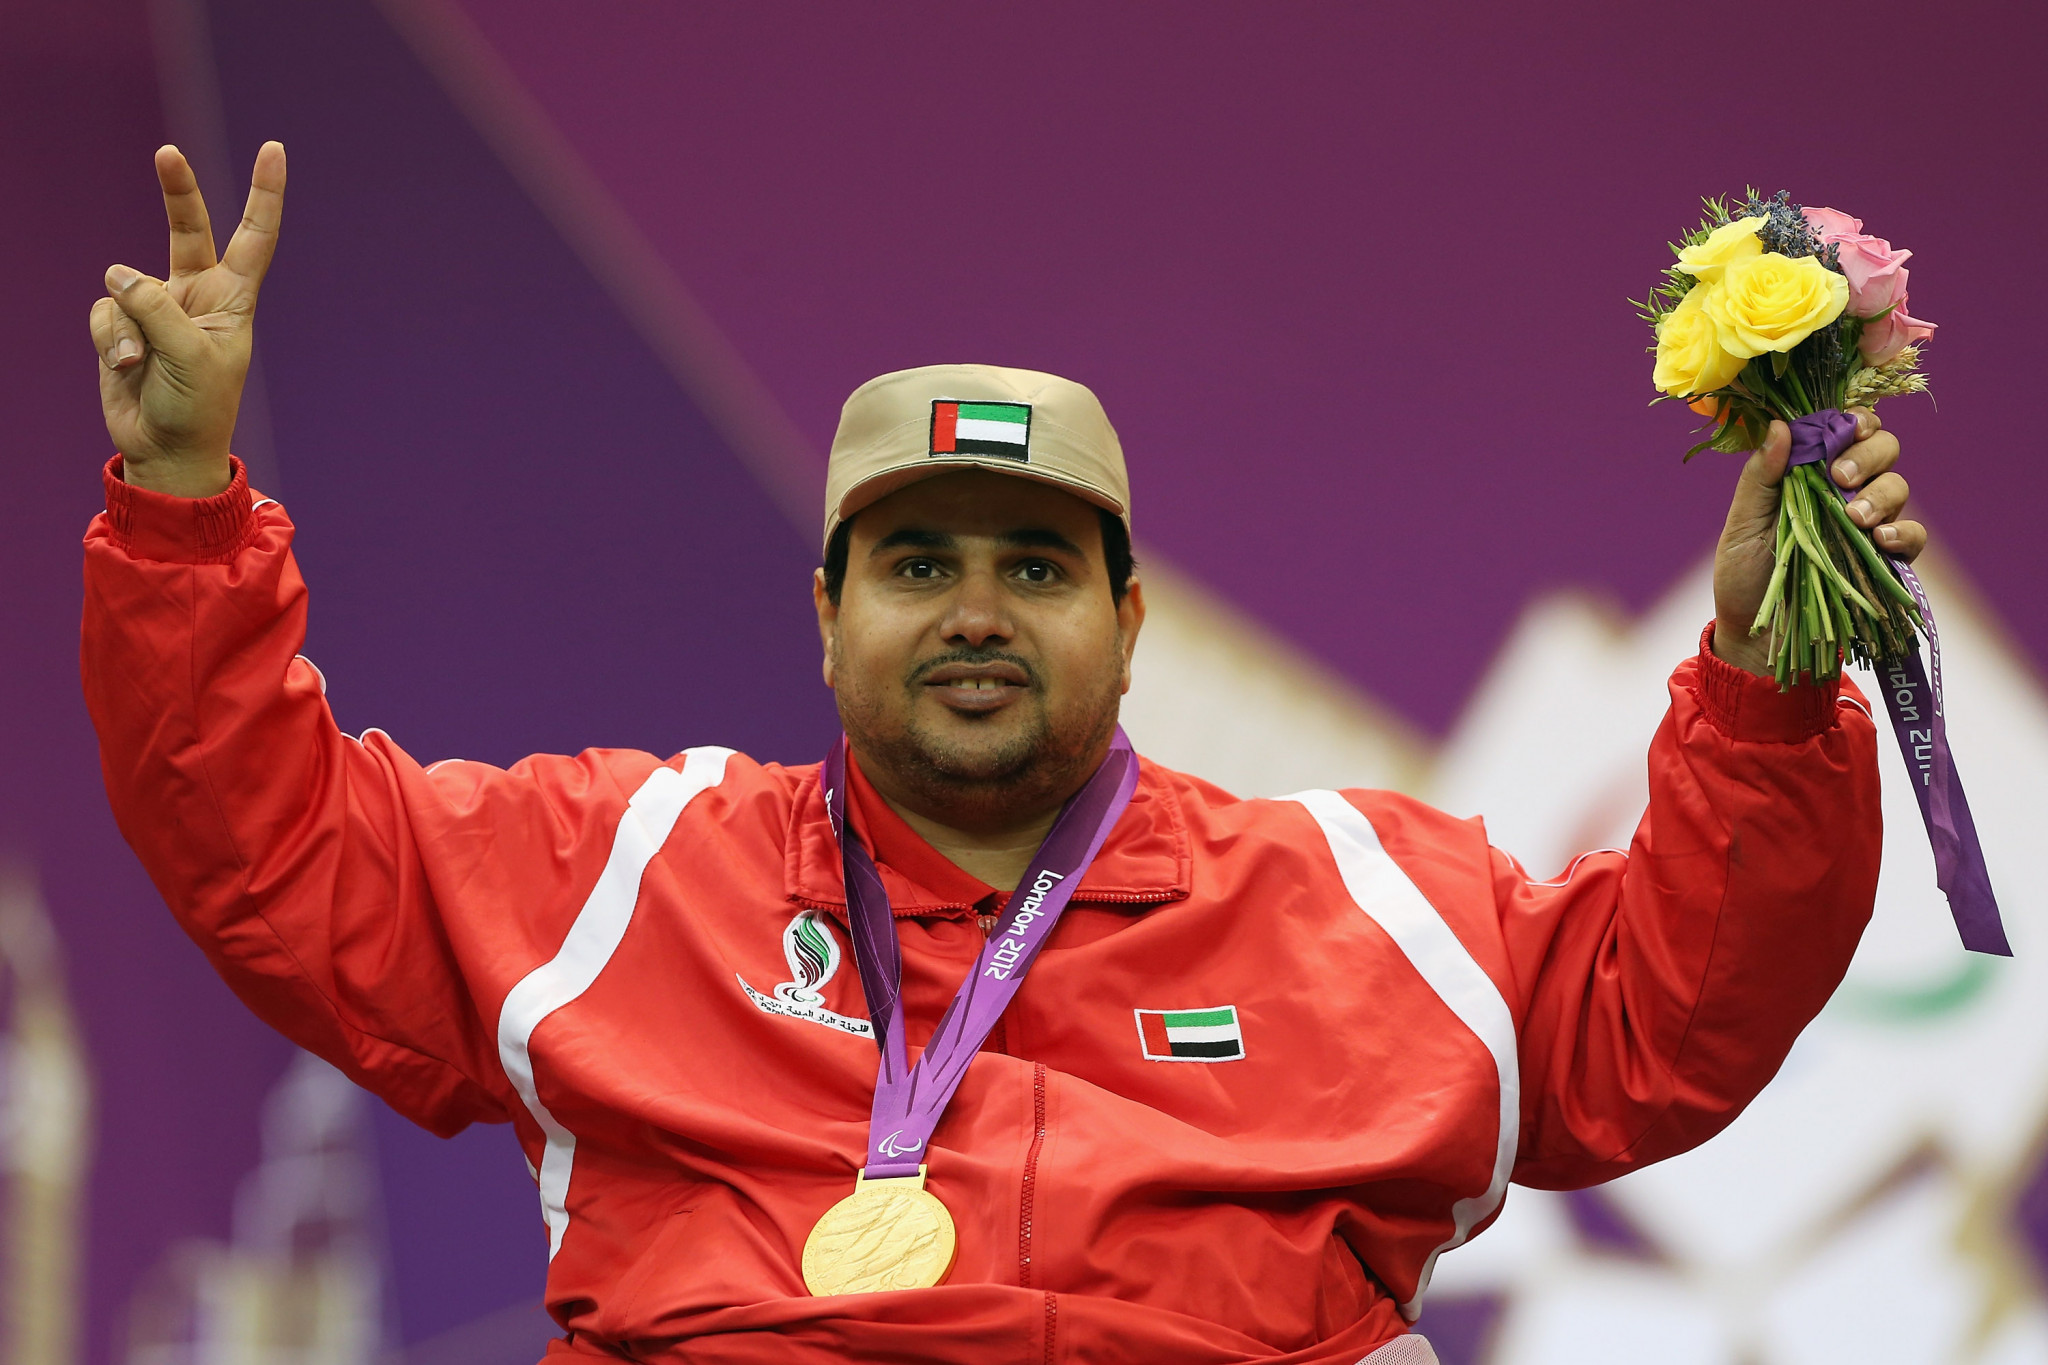 Alaryani wins home gold medal at Al Ain Shooting Para Sport World Cup